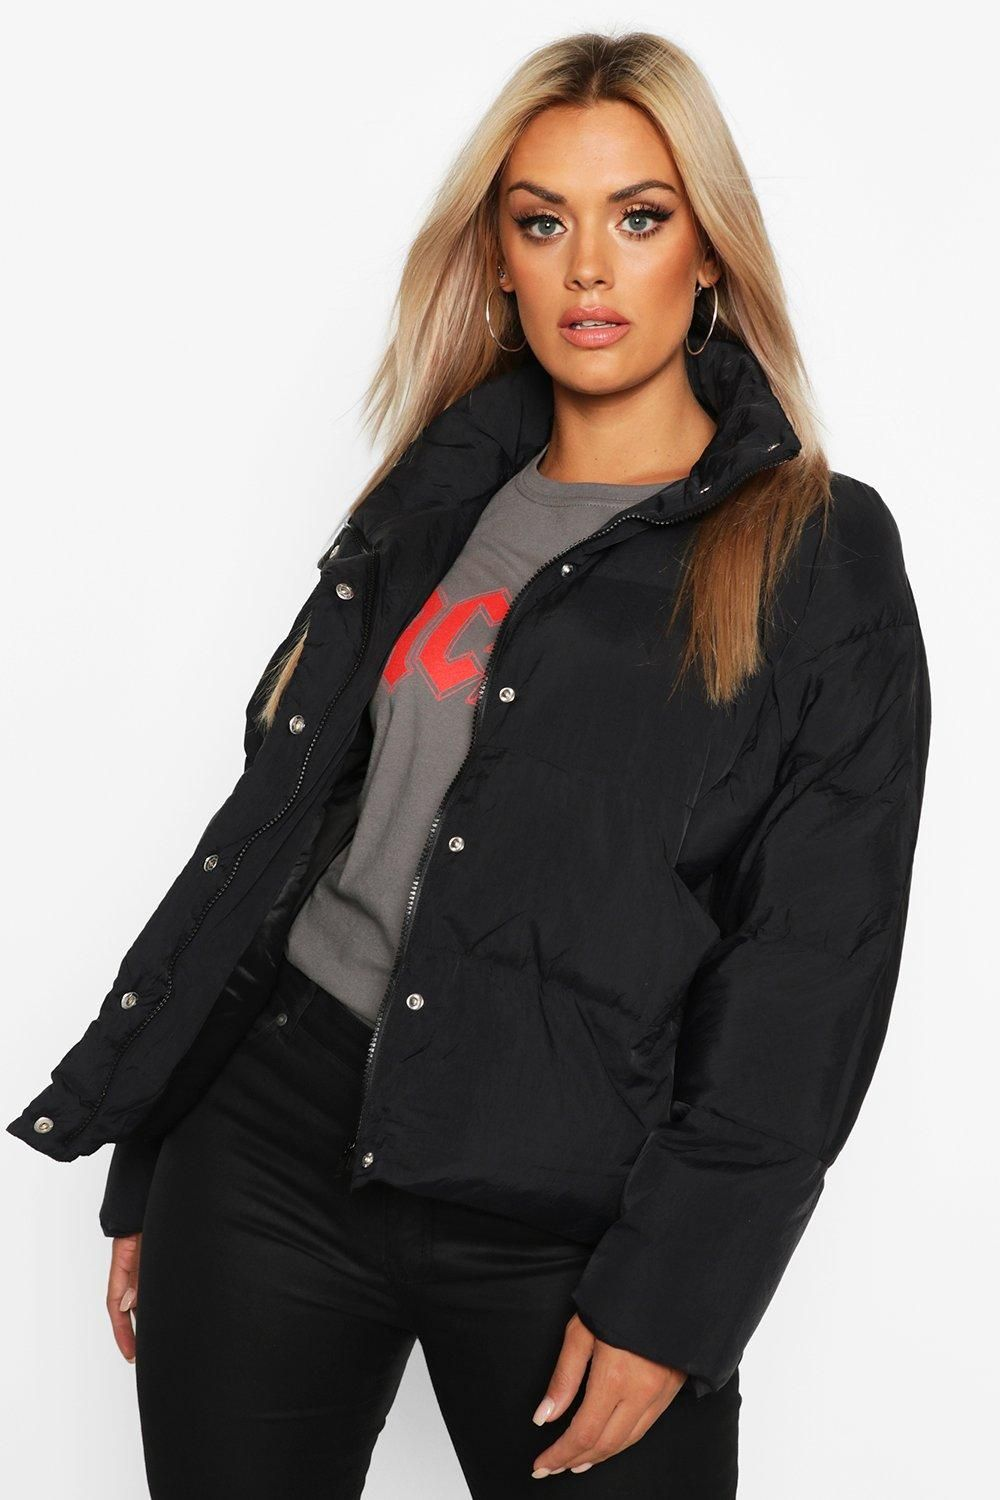 Plus Funnel Neck Cropped Puffer Jacket Boohoo Cropped Puffer Jacket Puffer Jacket Black Puffer Jacket Outfit [ 1500 x 1000 Pixel ]